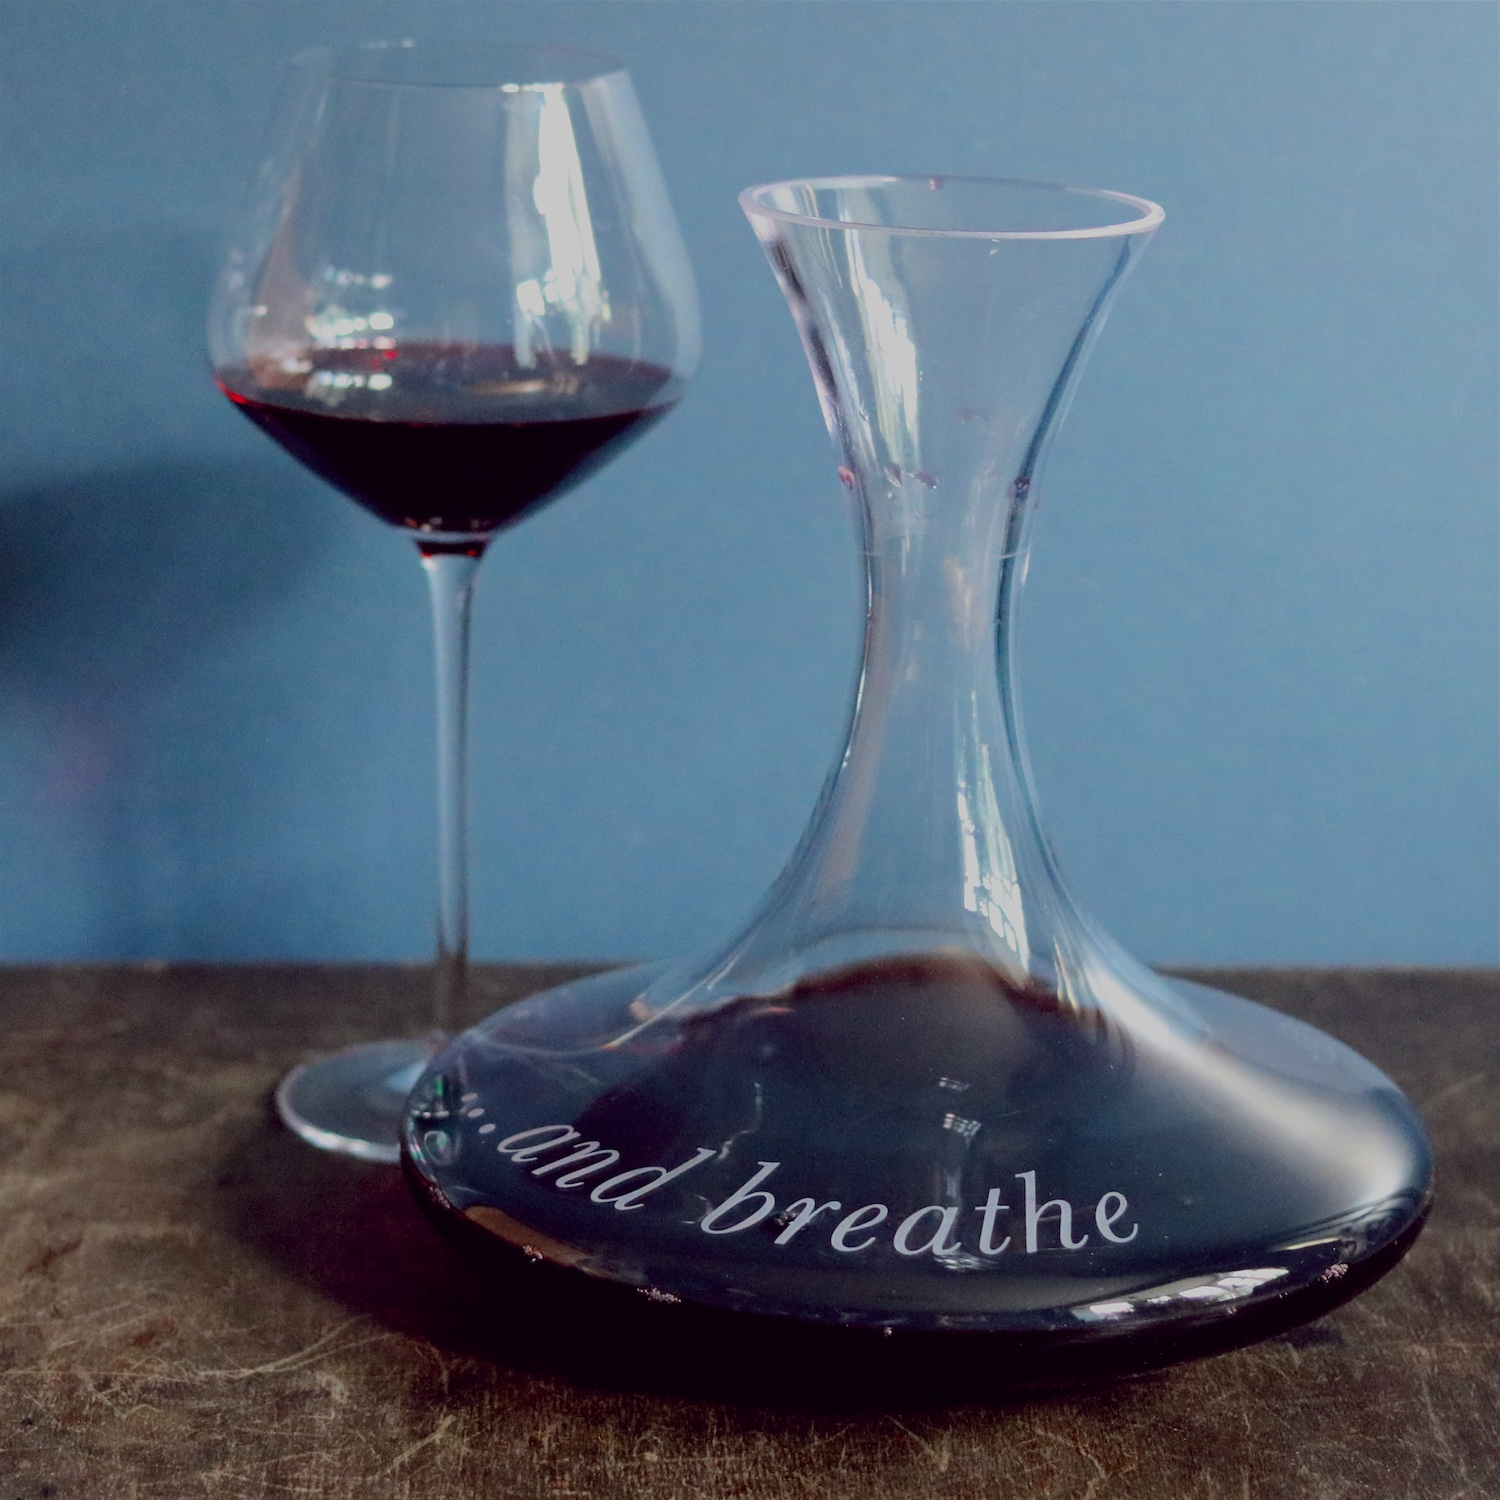 and-breathe-etched-decanter-vinegar-and-brown-paper.jpg